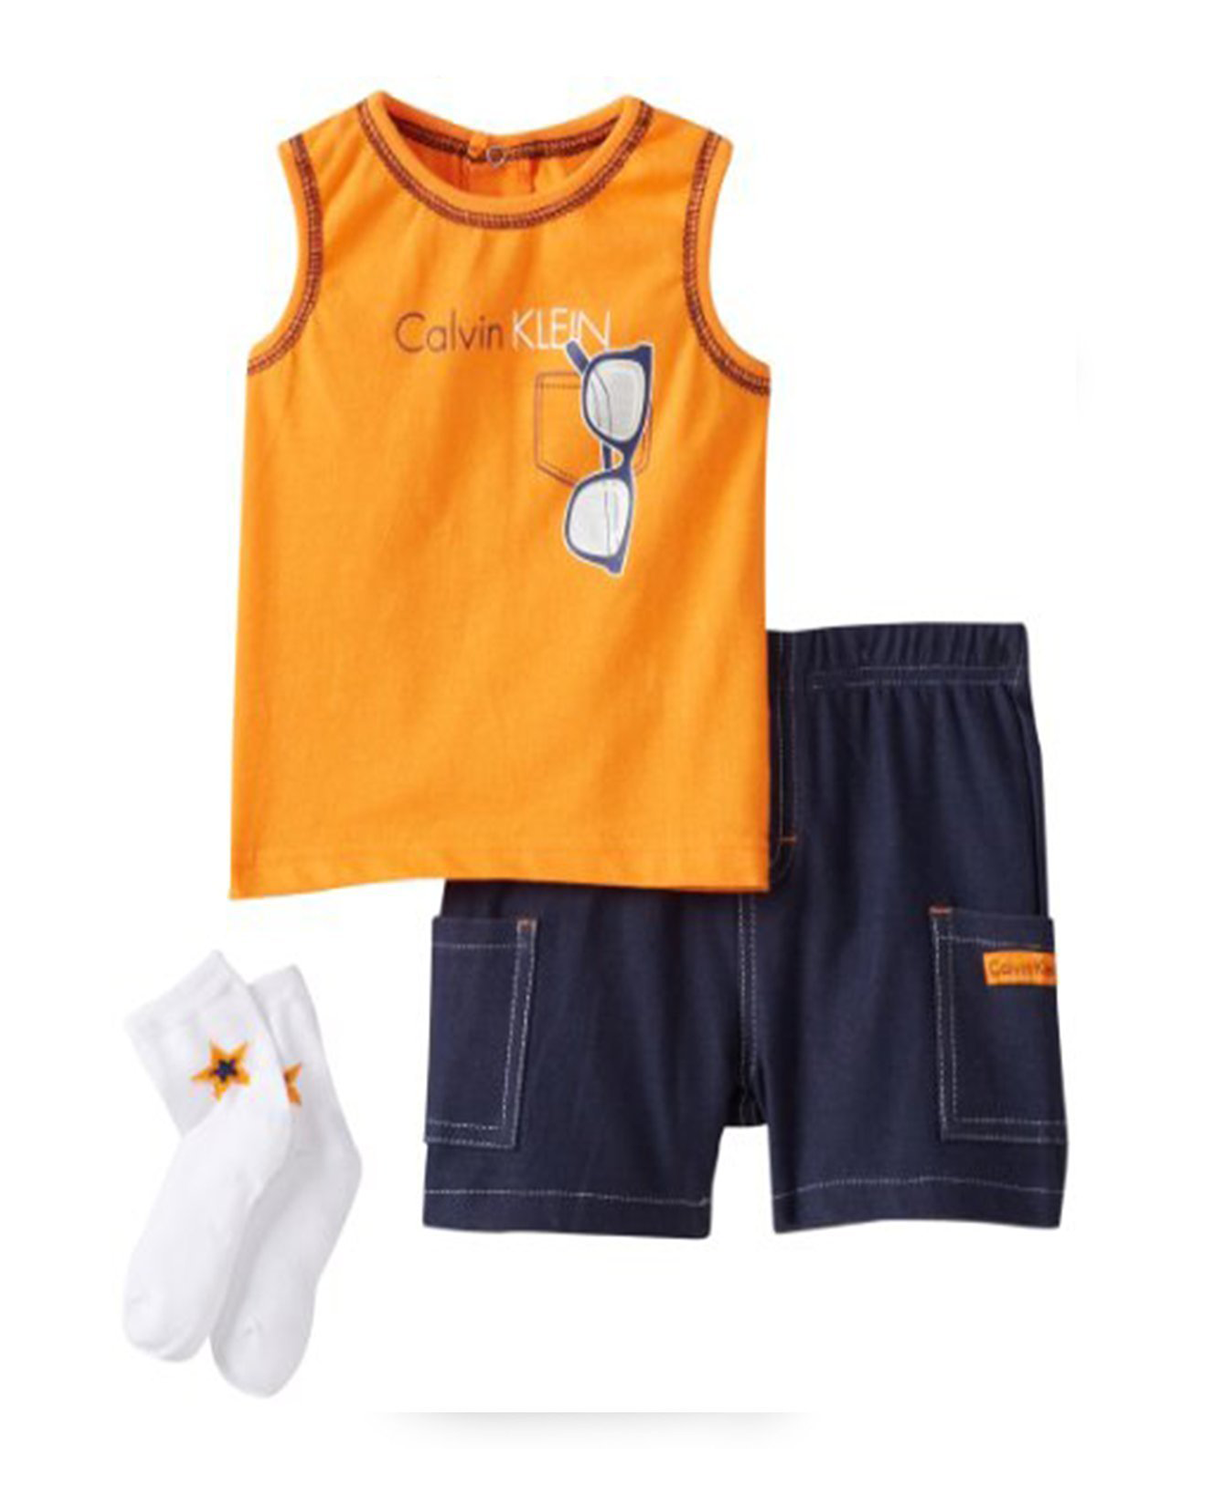 cdbaaacfd6899 Calvin Klein Baby Boy 3 Piece Set with Shorts Tank Top and Socks  Calvin  Klein